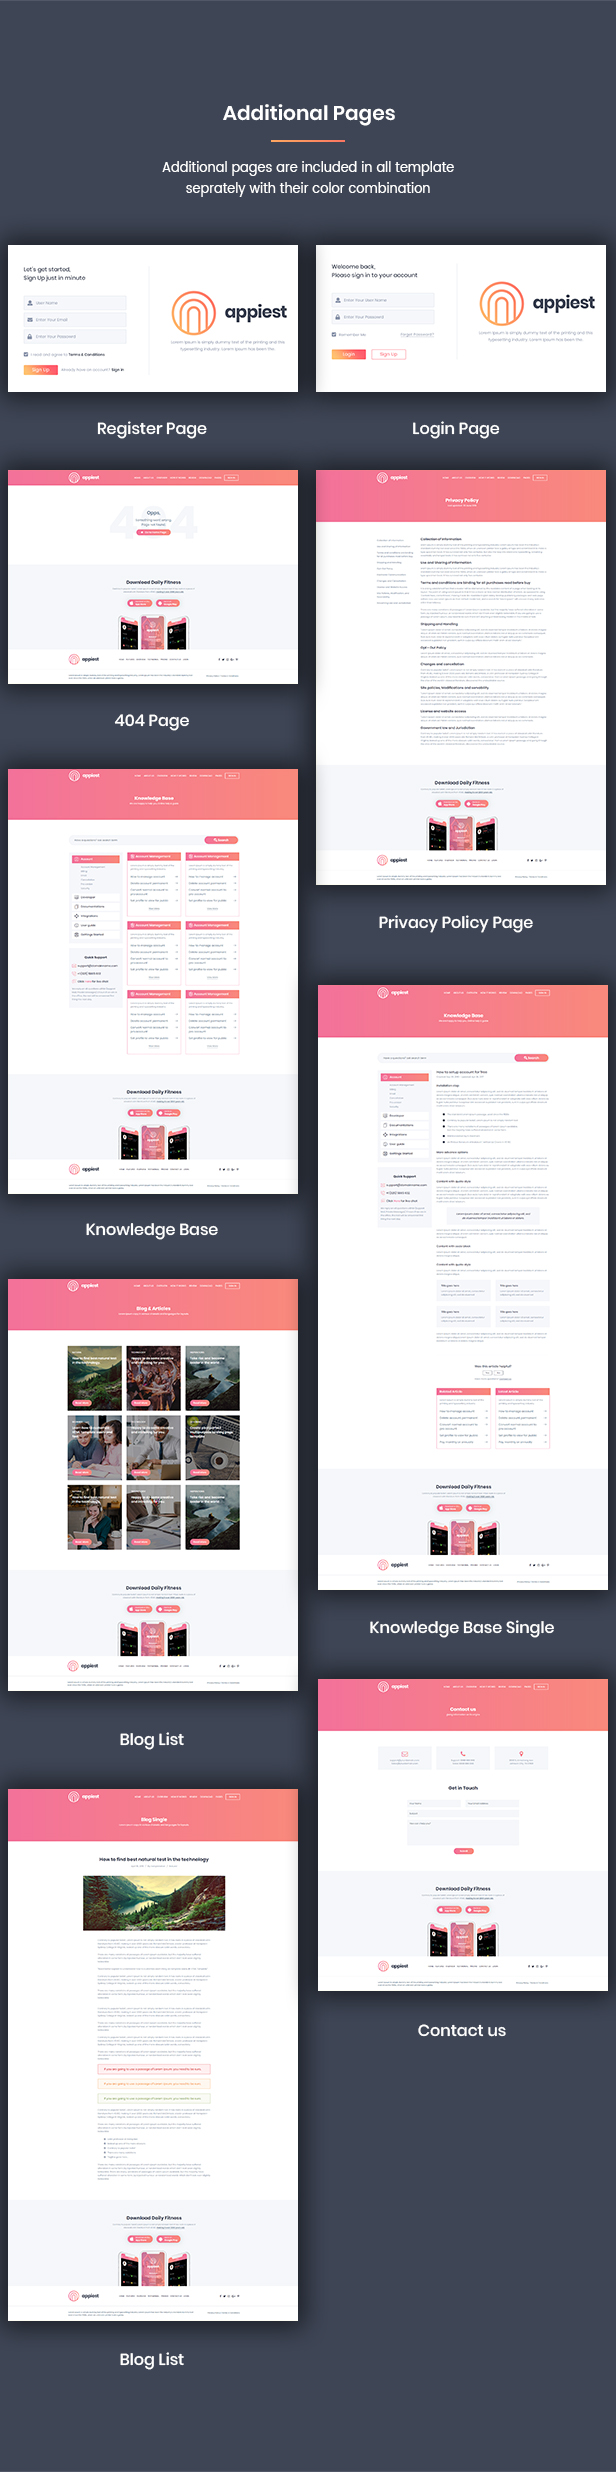 Appiest - MultiConcept App Landing Page HTML - 2